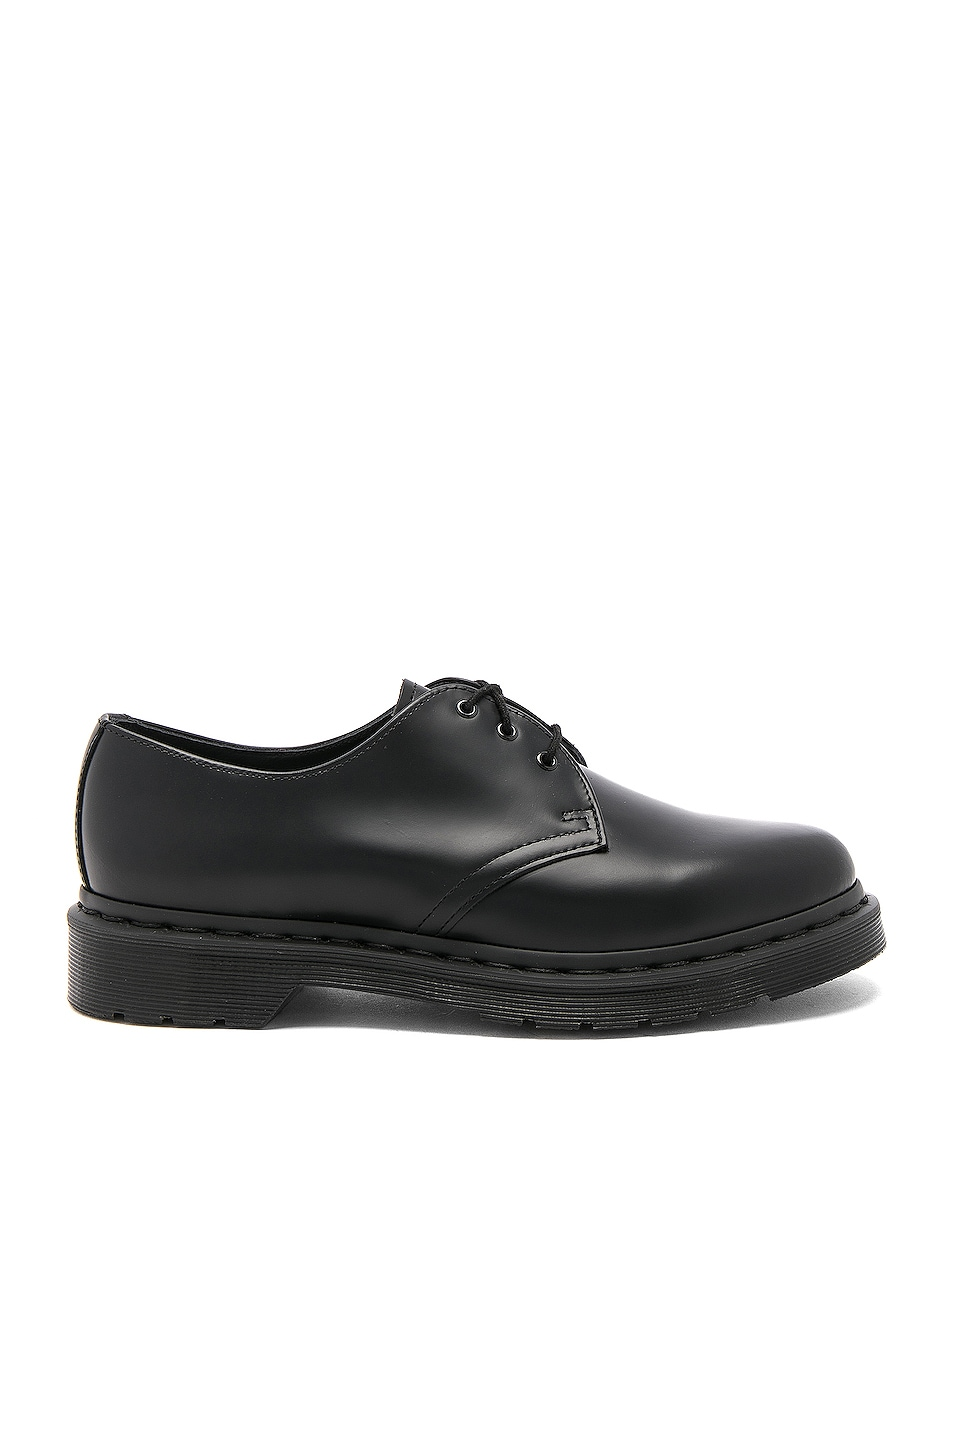 Image 1 of Dr. Martens 1461 3 Eye Gibson in Black Mono